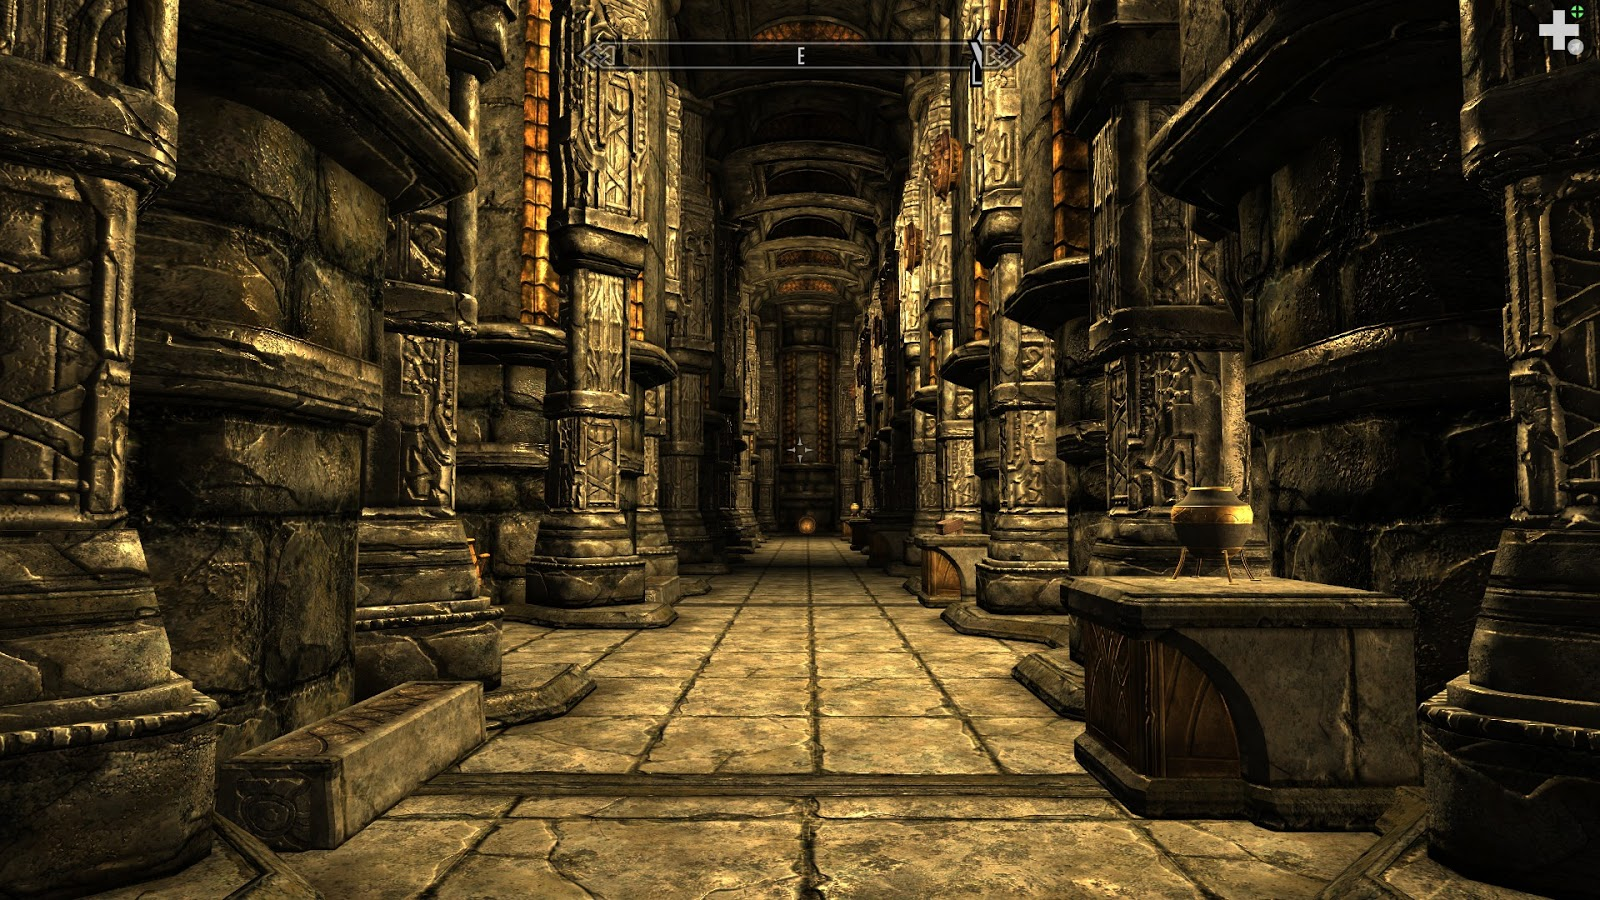 Radiator Blog: The Forgotten City (Skyrim mod) as dense quest